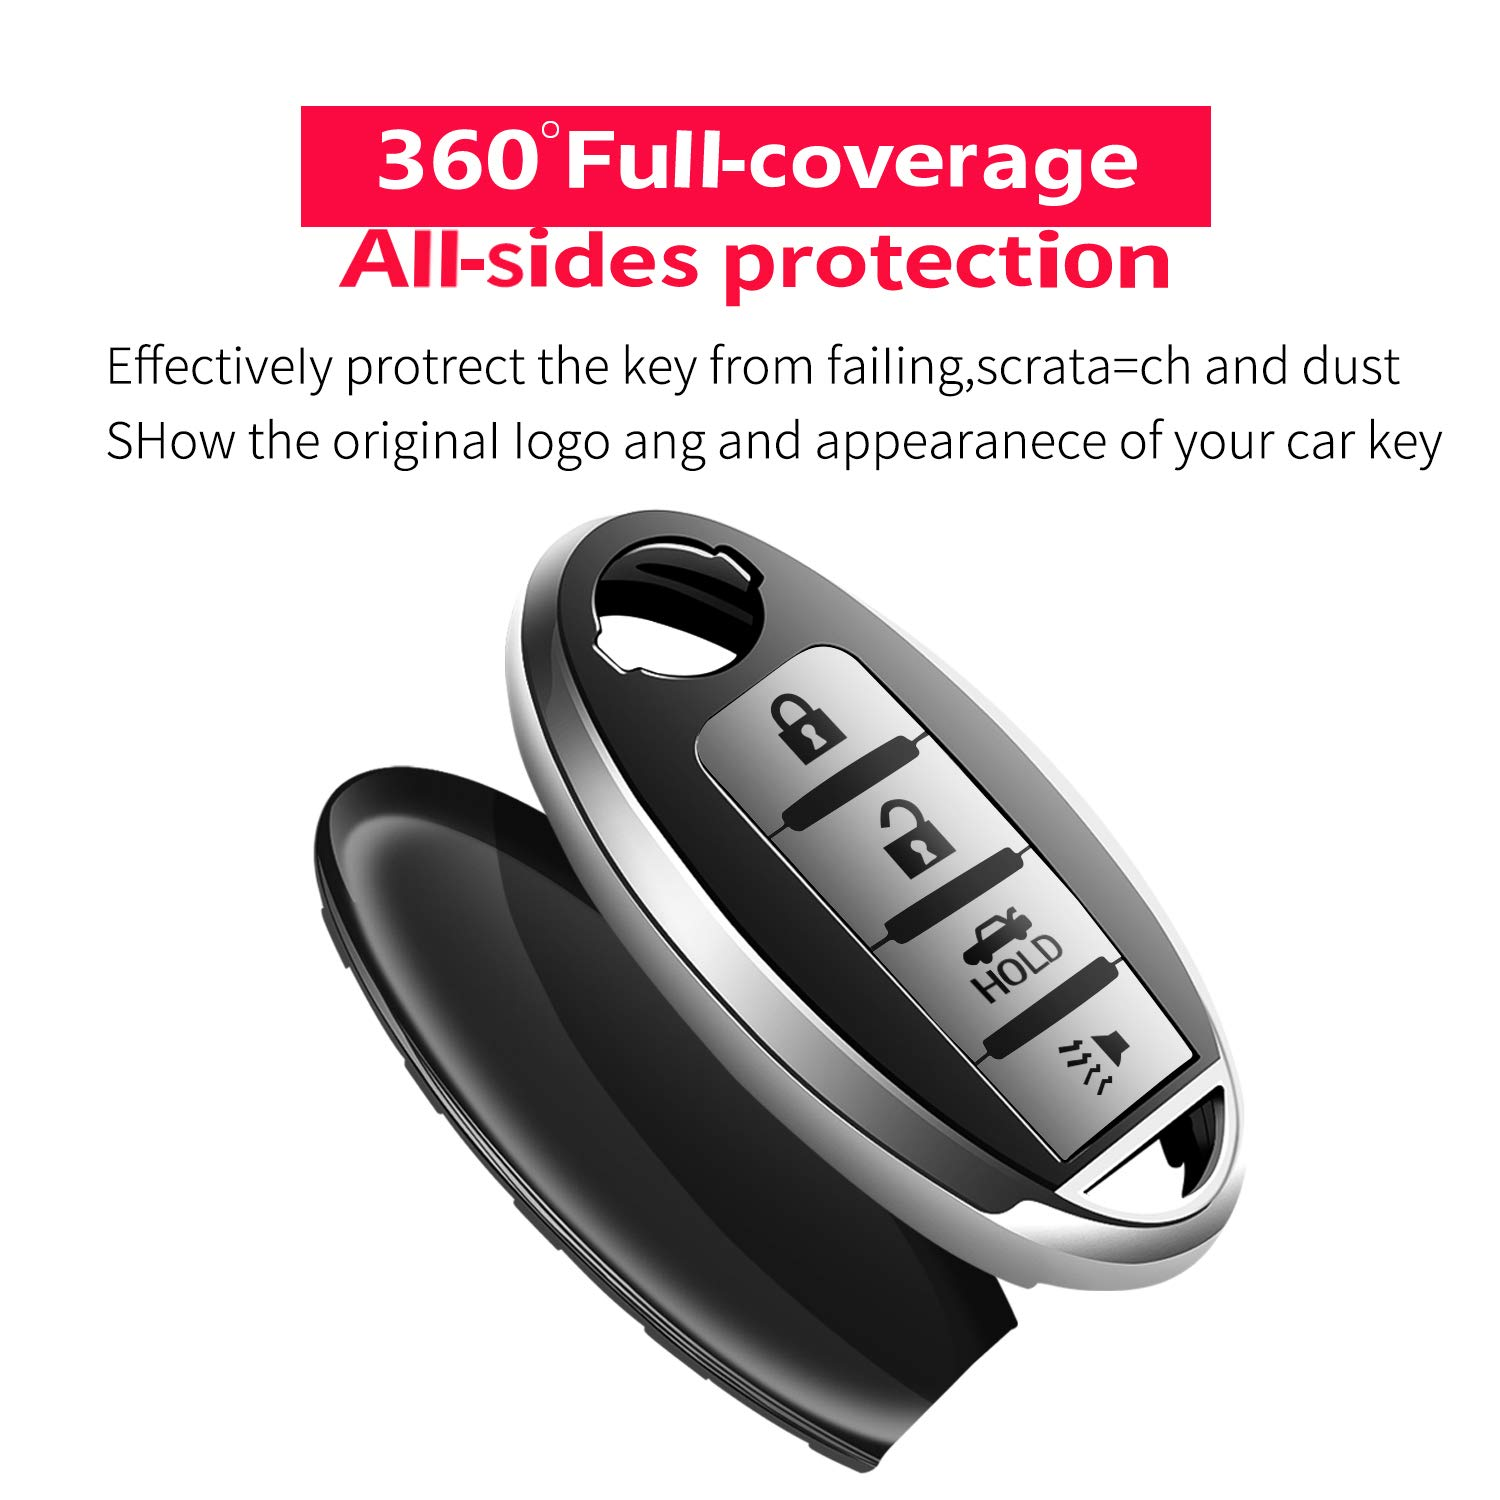 only for 4 Buttons Keyless go Special Soft TPU Key Case Cover Protector Compatible with Nissan Altima Maxima Murano Pathfinder Rogue Armada Sentra Titan Tukeller for Nissan Key Fob Cover -Red